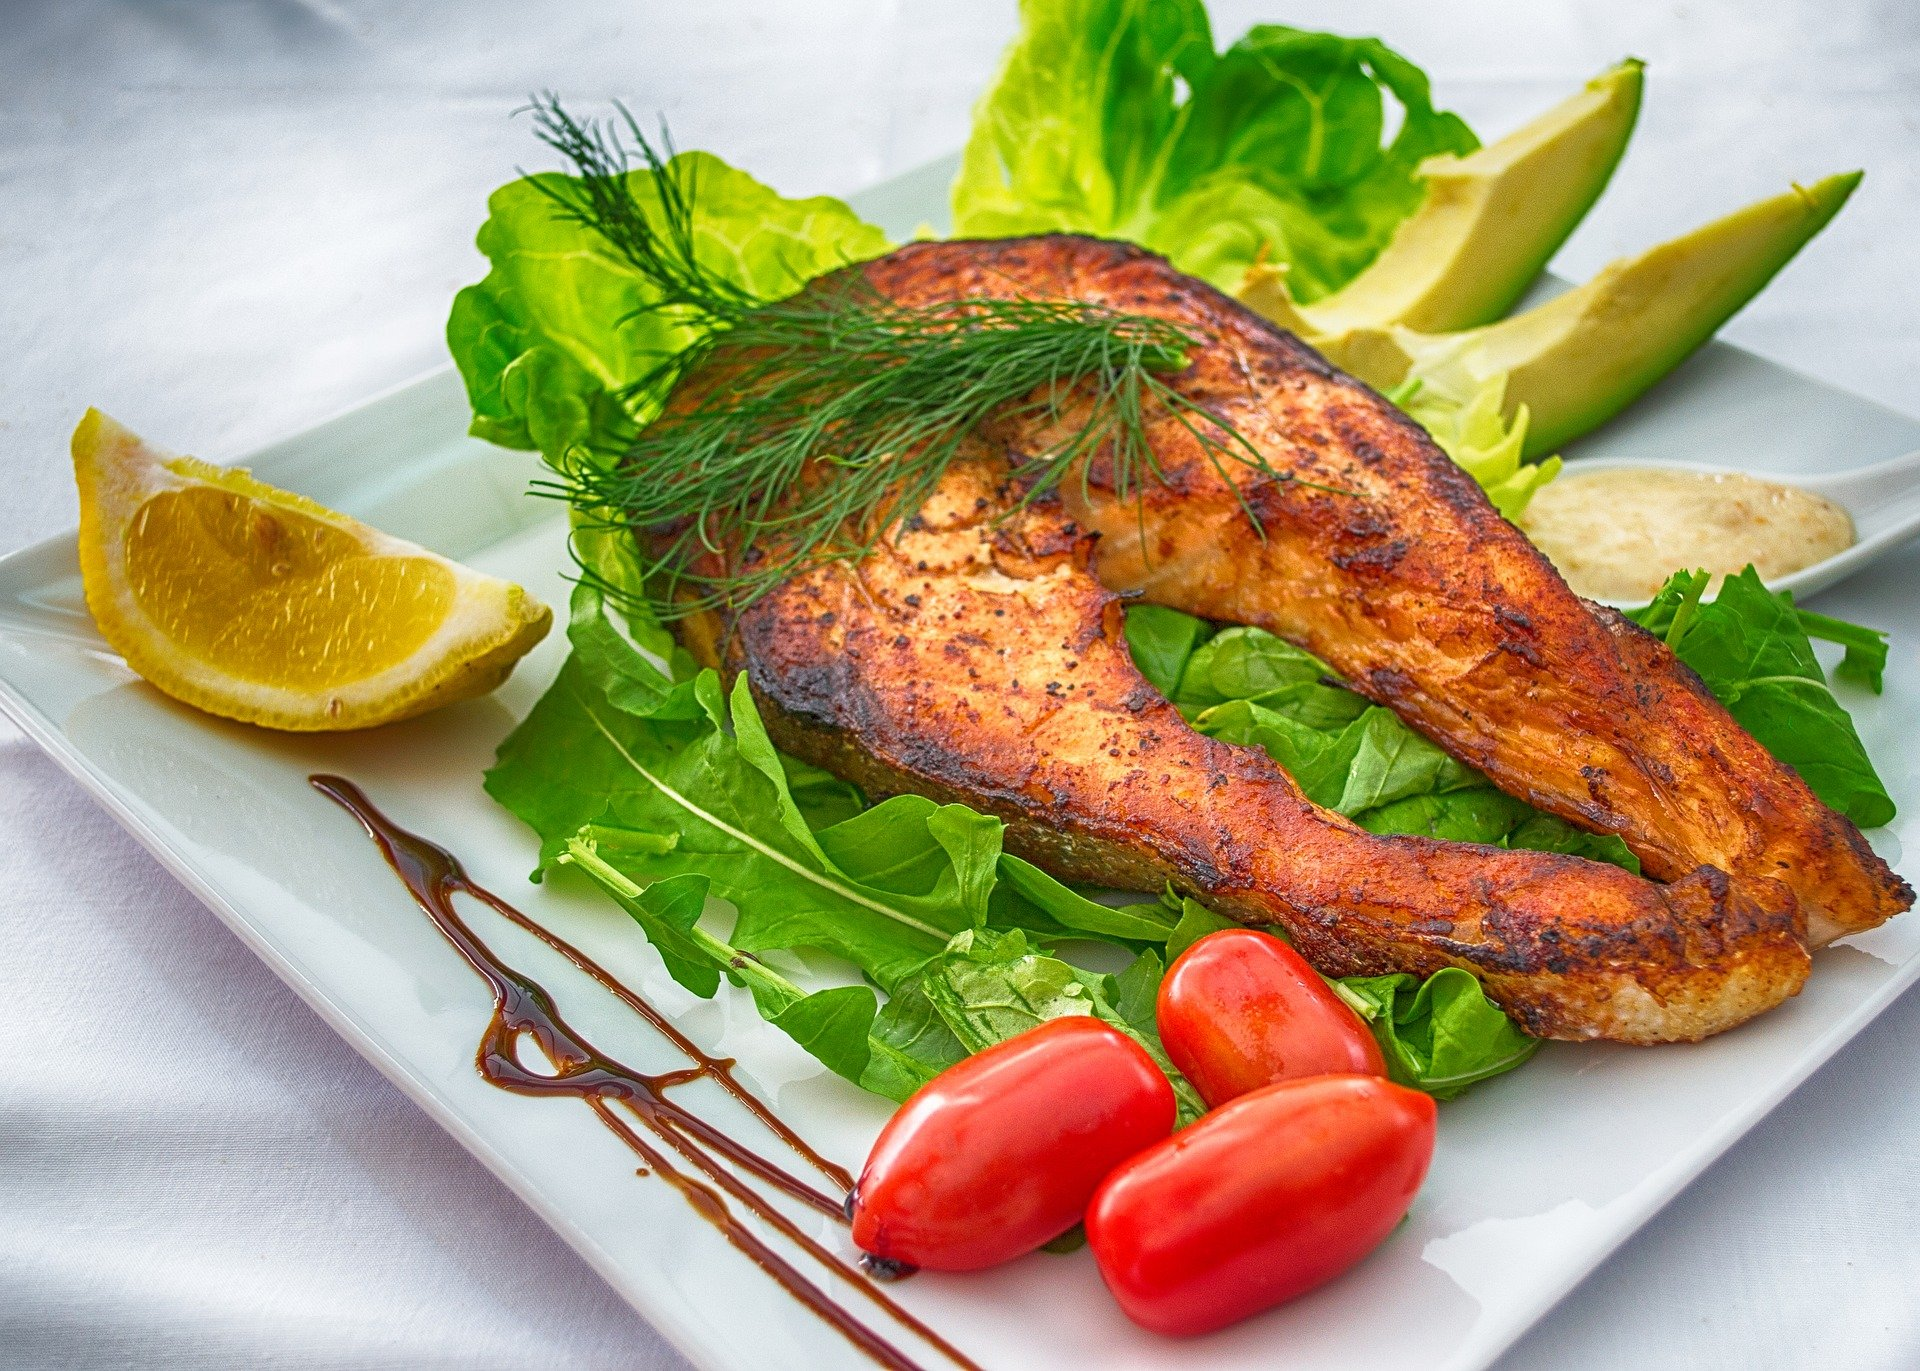 Susan had planned a lovely fish dinner that night.   Photo: Pixabay